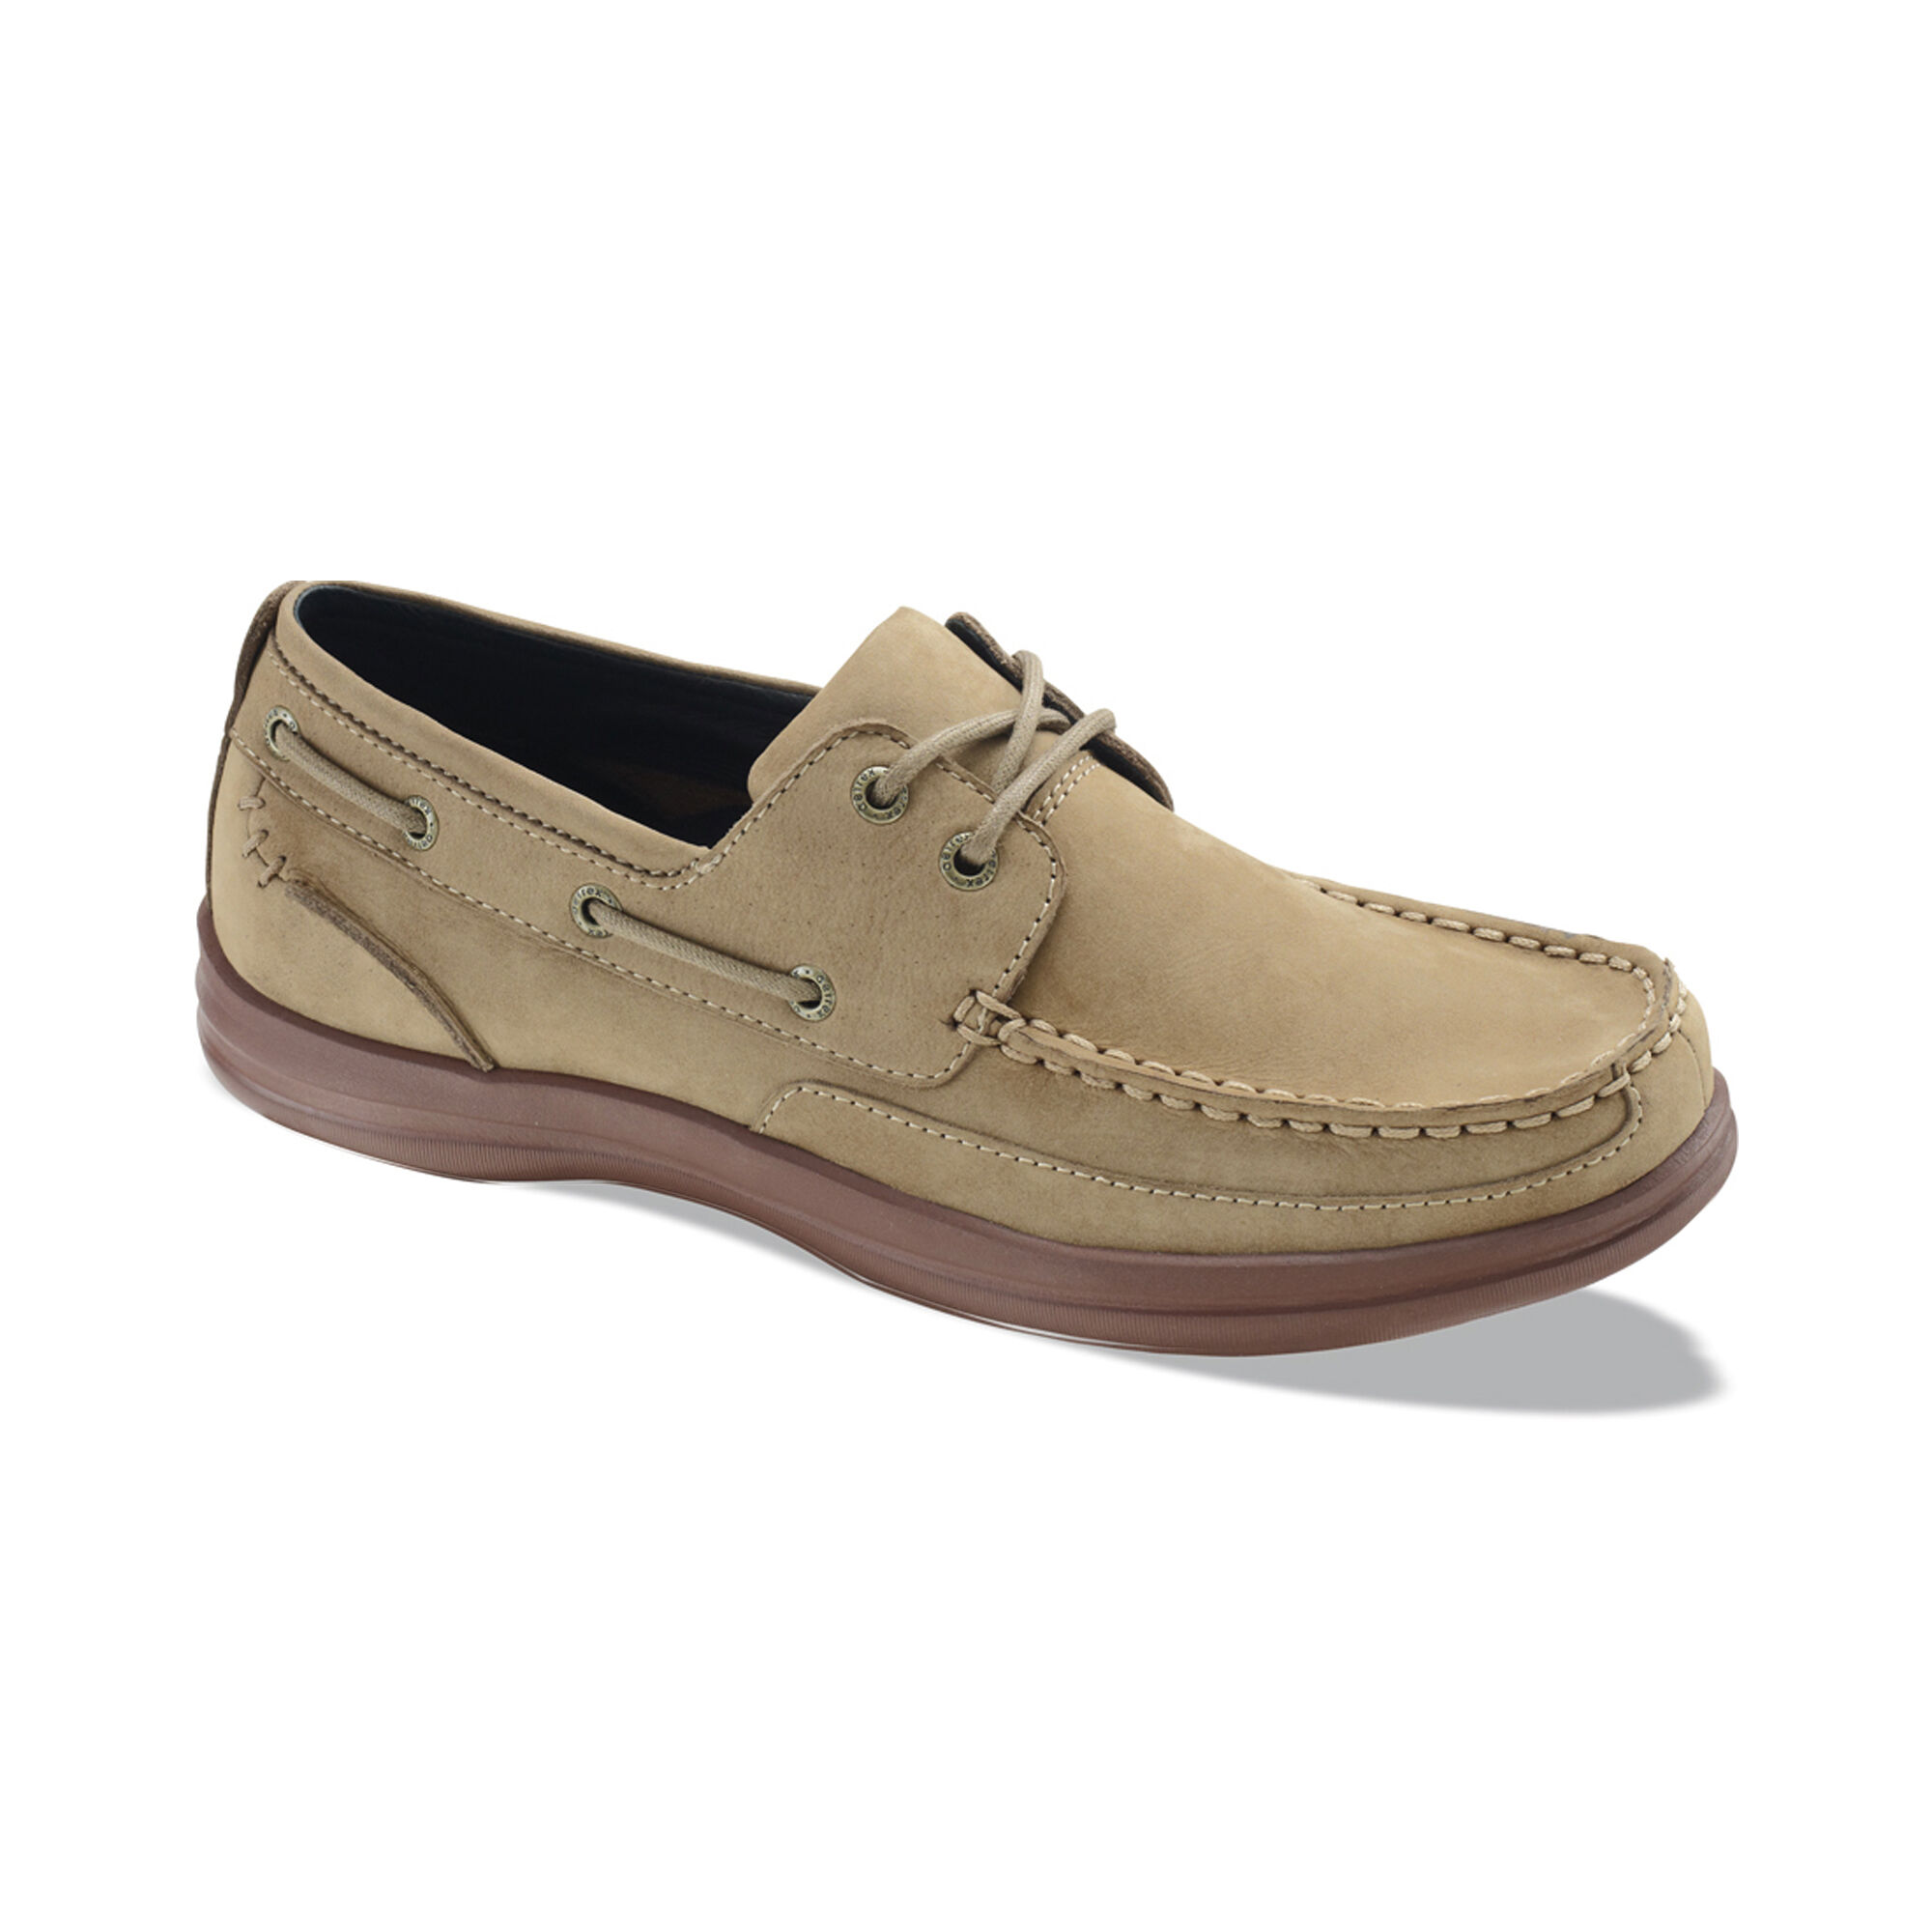 women's orthotic boat shoes